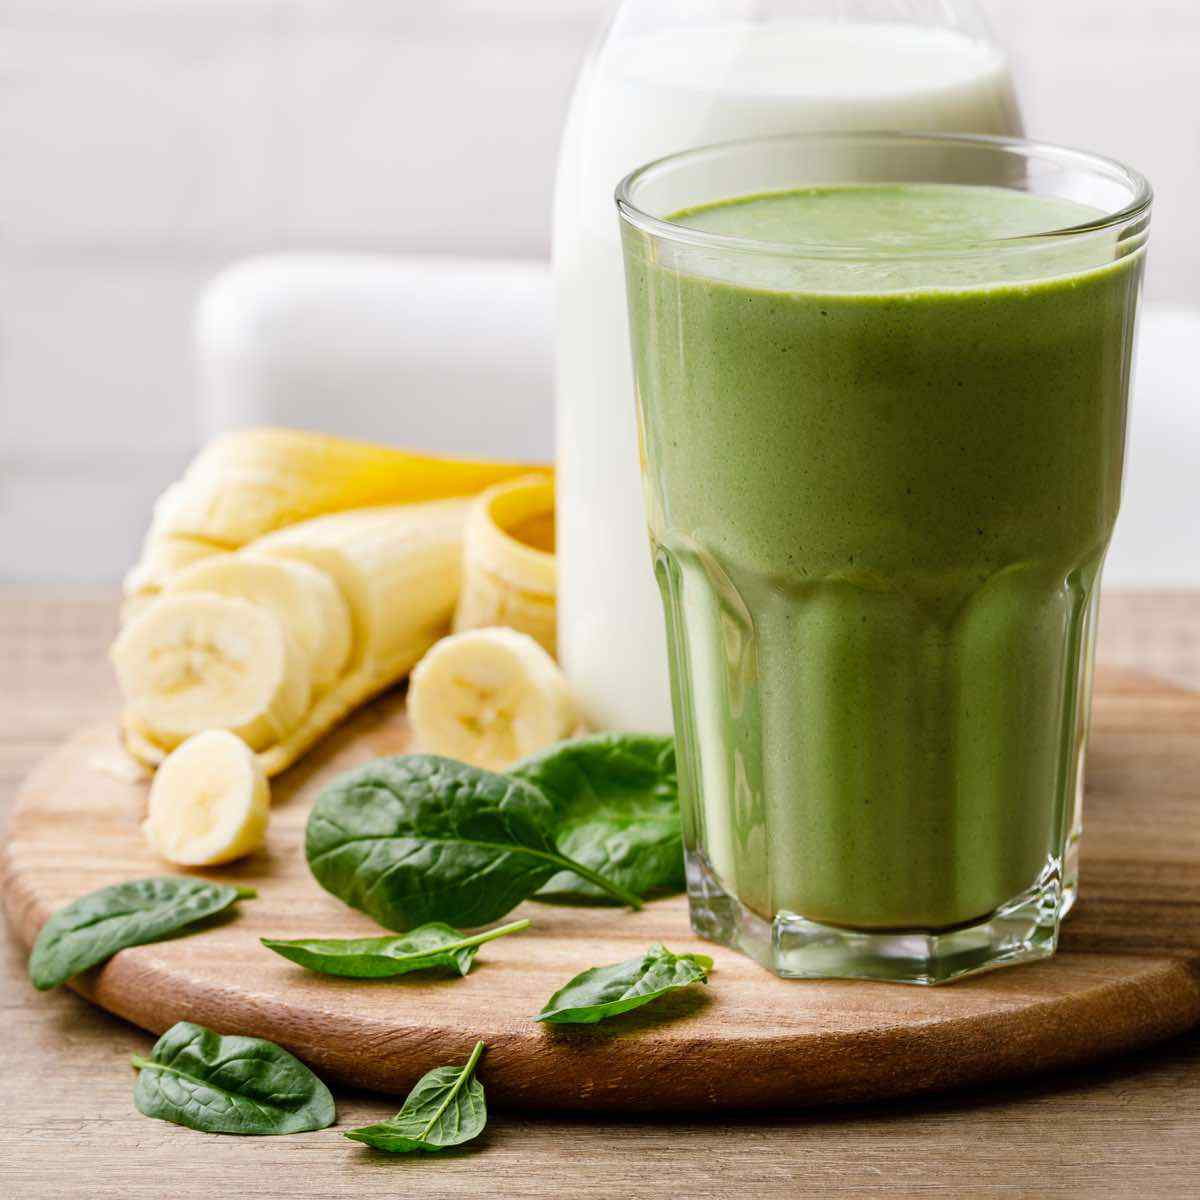 5-Minute Spinach Banana Smoothie (Easy Recipe!) - Blender Balance